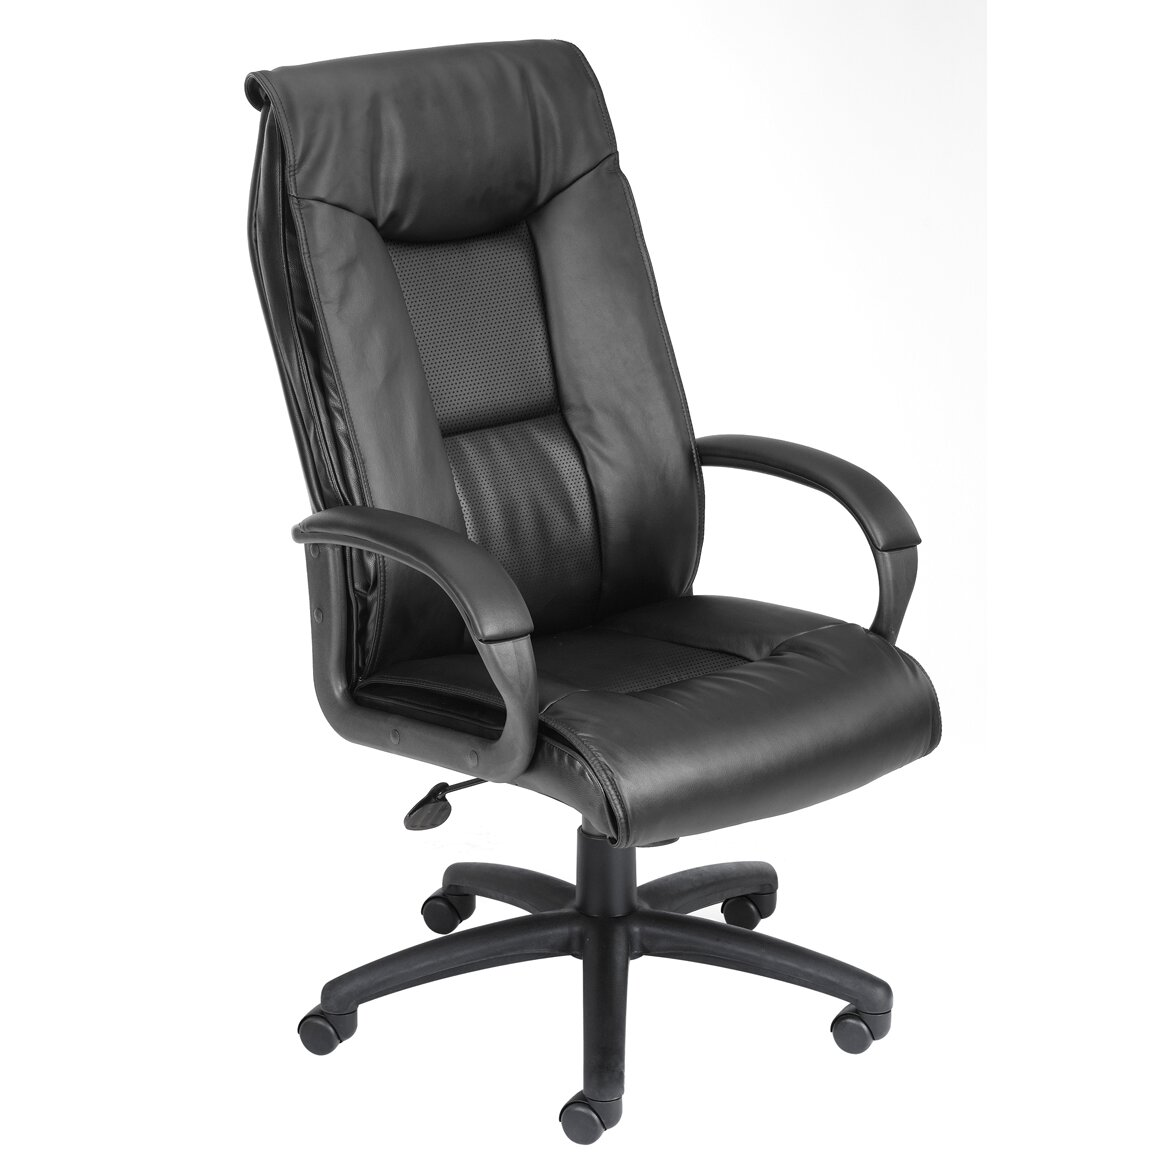 boss office products leather executive chair reviews